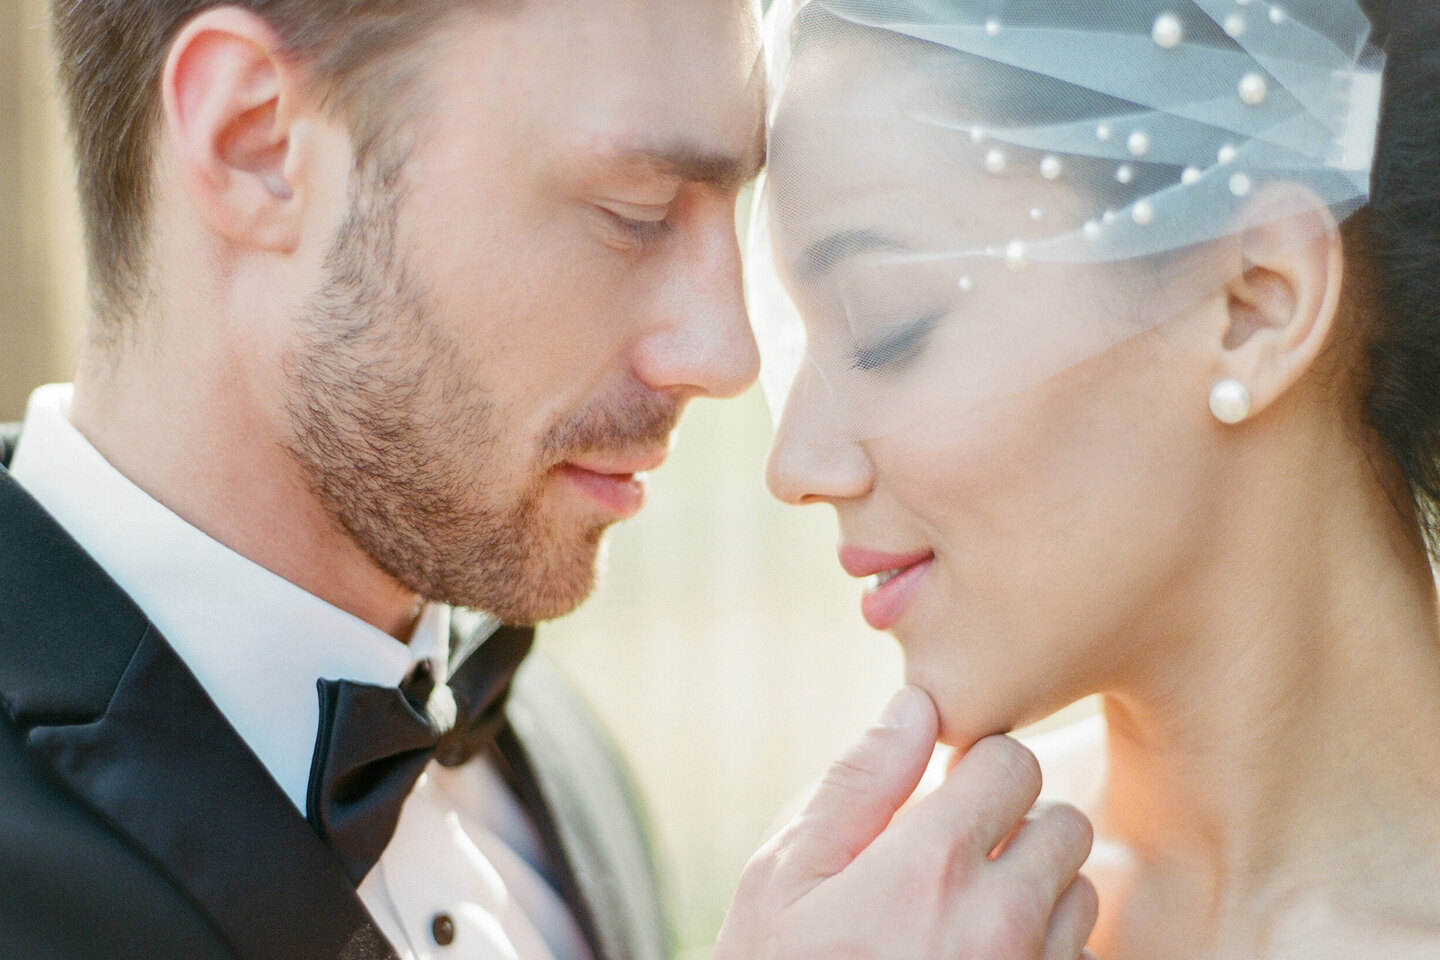 Services of Wedding Photographer in Italy: Portrait of a couple where the groom gently touches his beloved chin, showing his love and care